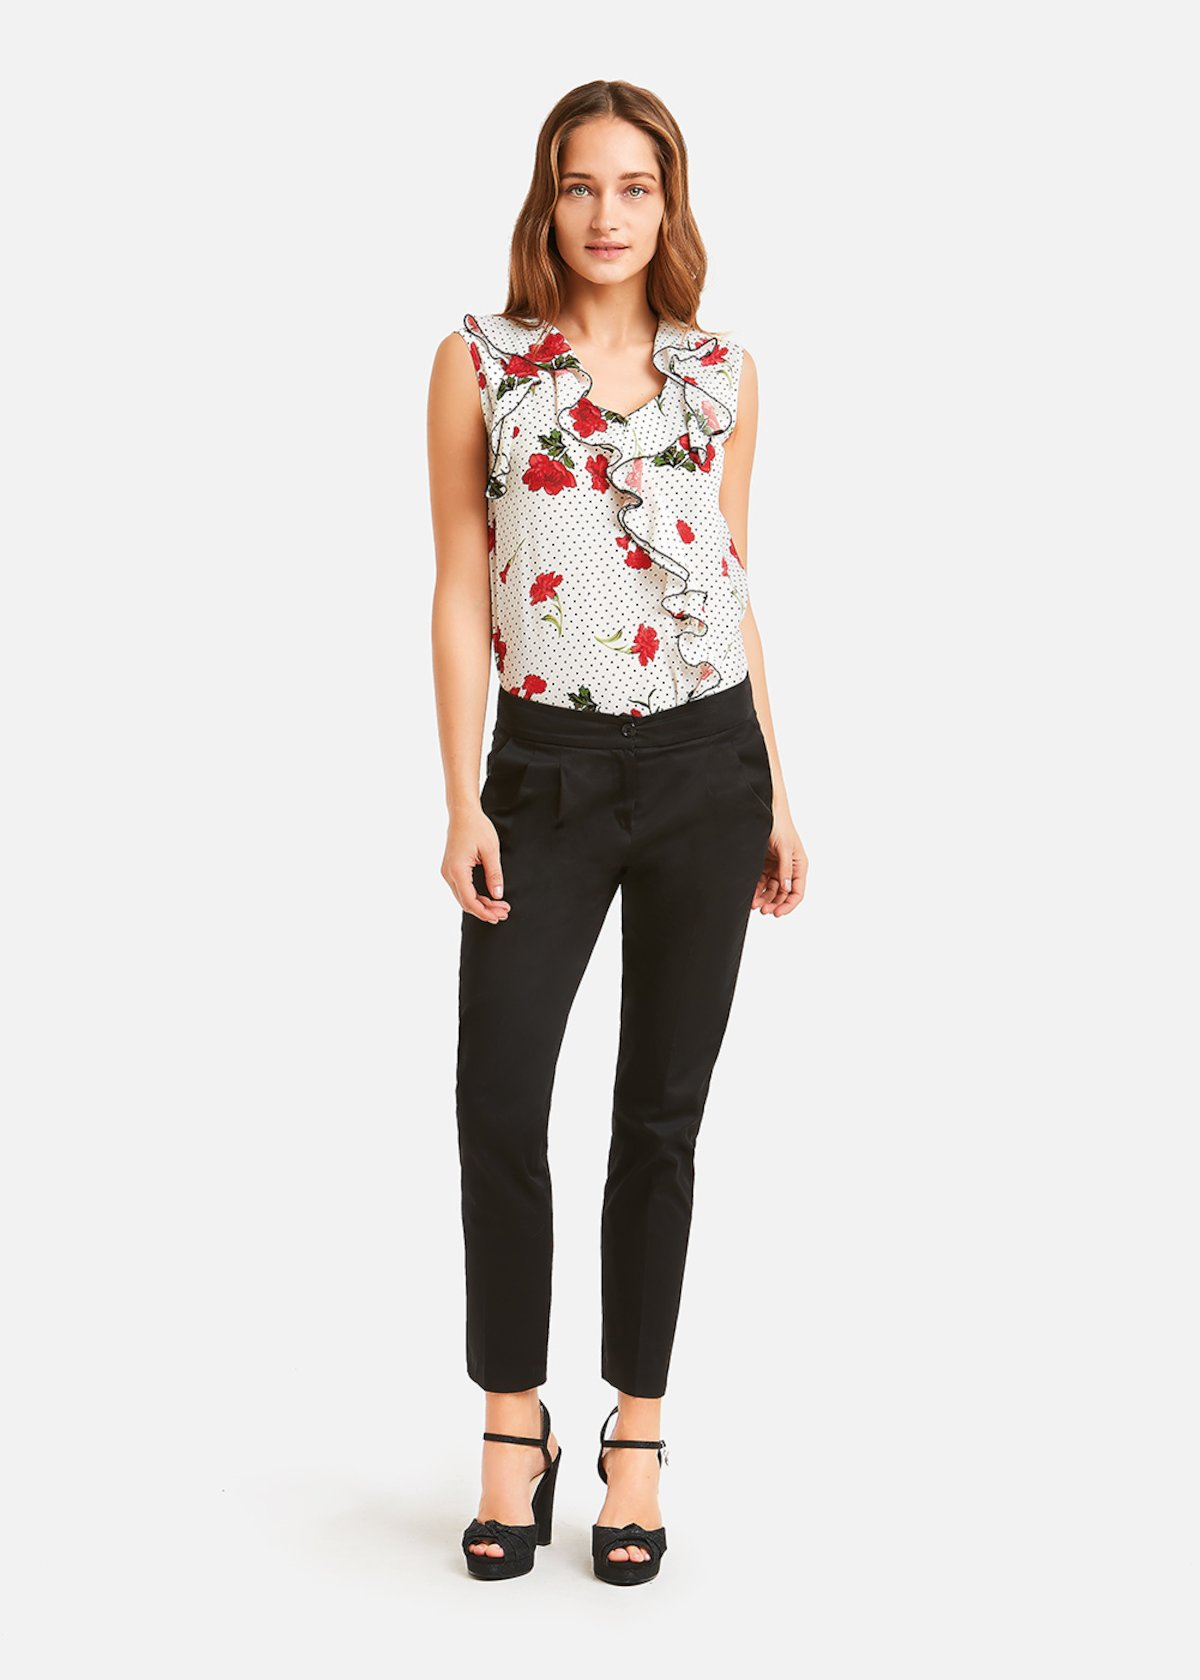 Top Thery with flowers and polka dots pattern - White Rouge  Fantasia